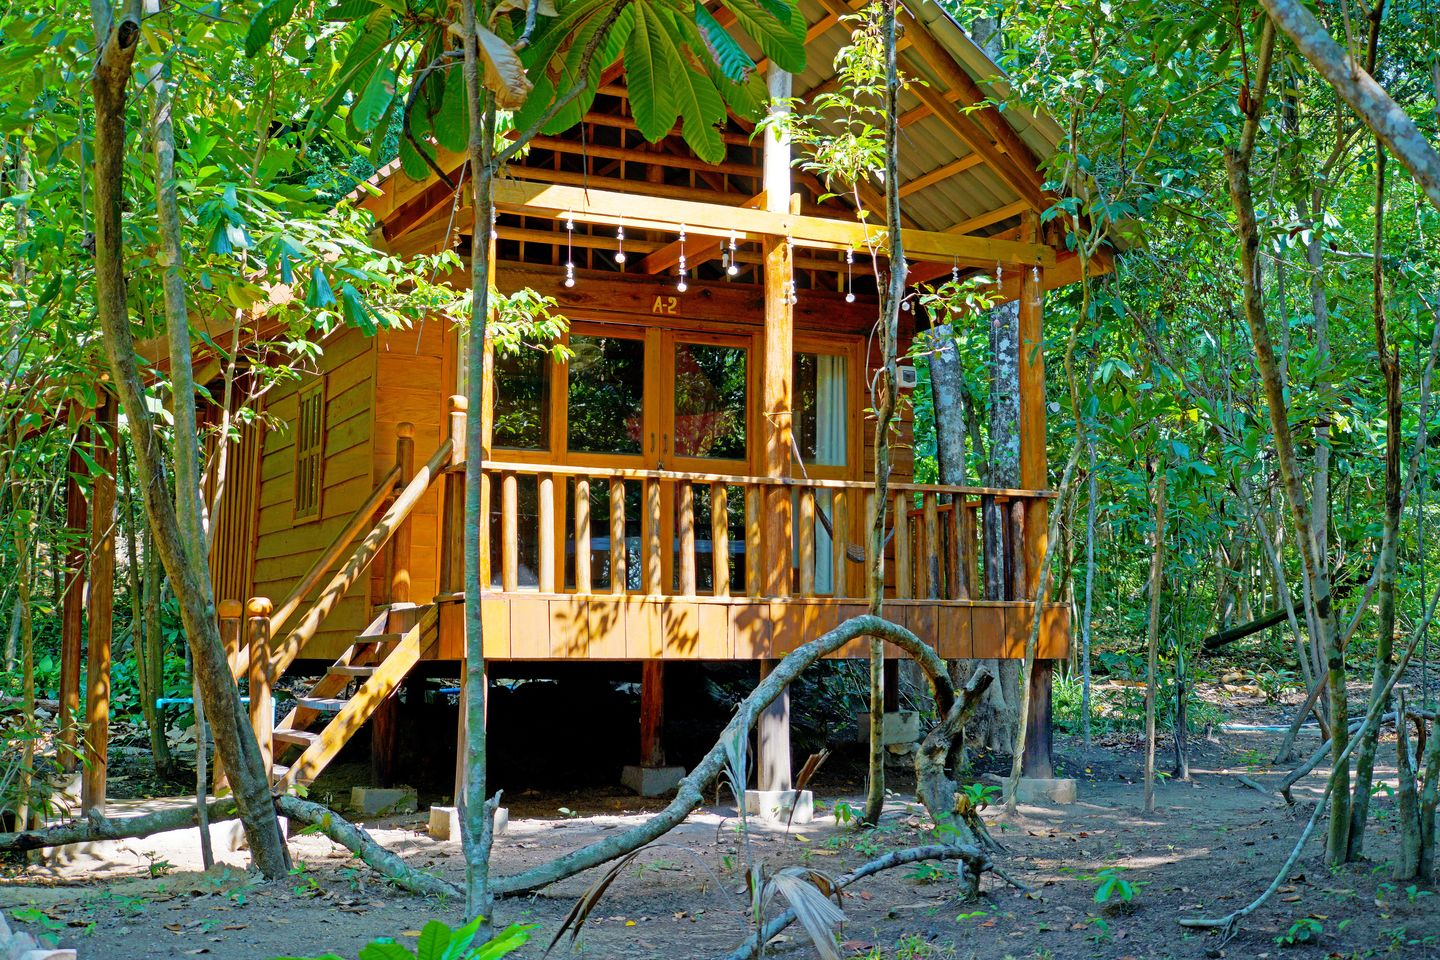 Tree House Bungalows.8 Jungle House 4 People.hotels/74a443139a295d2b14a8b6f93515adb6c8576919/room/tree-house-bungalows-8-jungle-house-4-people-73982.jpg